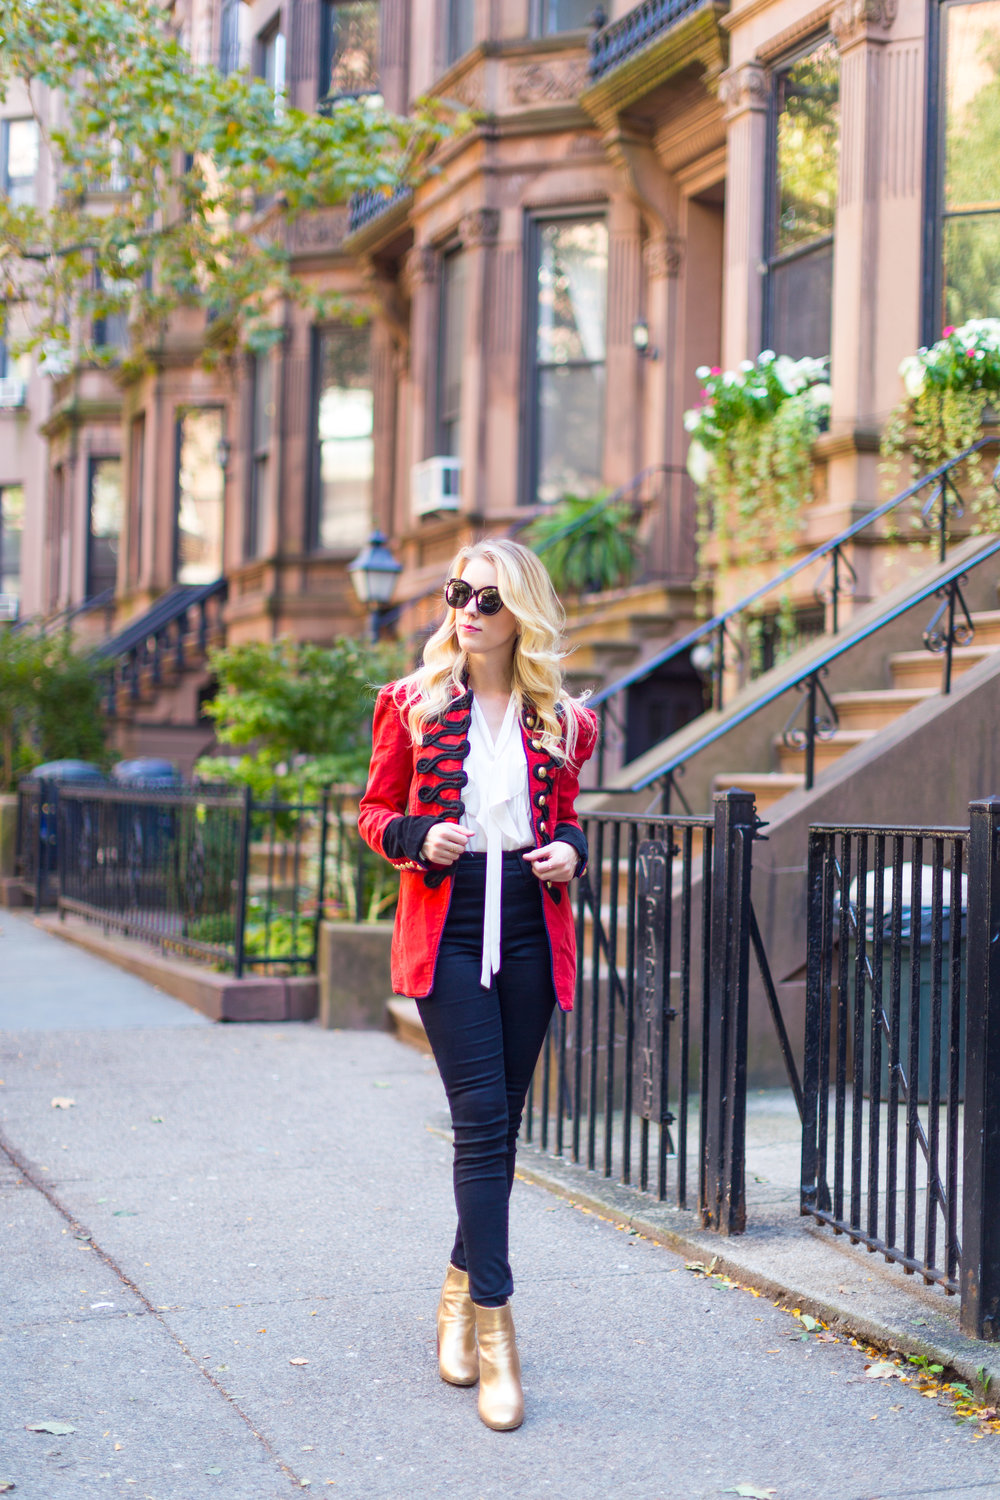 Fall Fashion Red Band Jacket Trendy-6.jpg